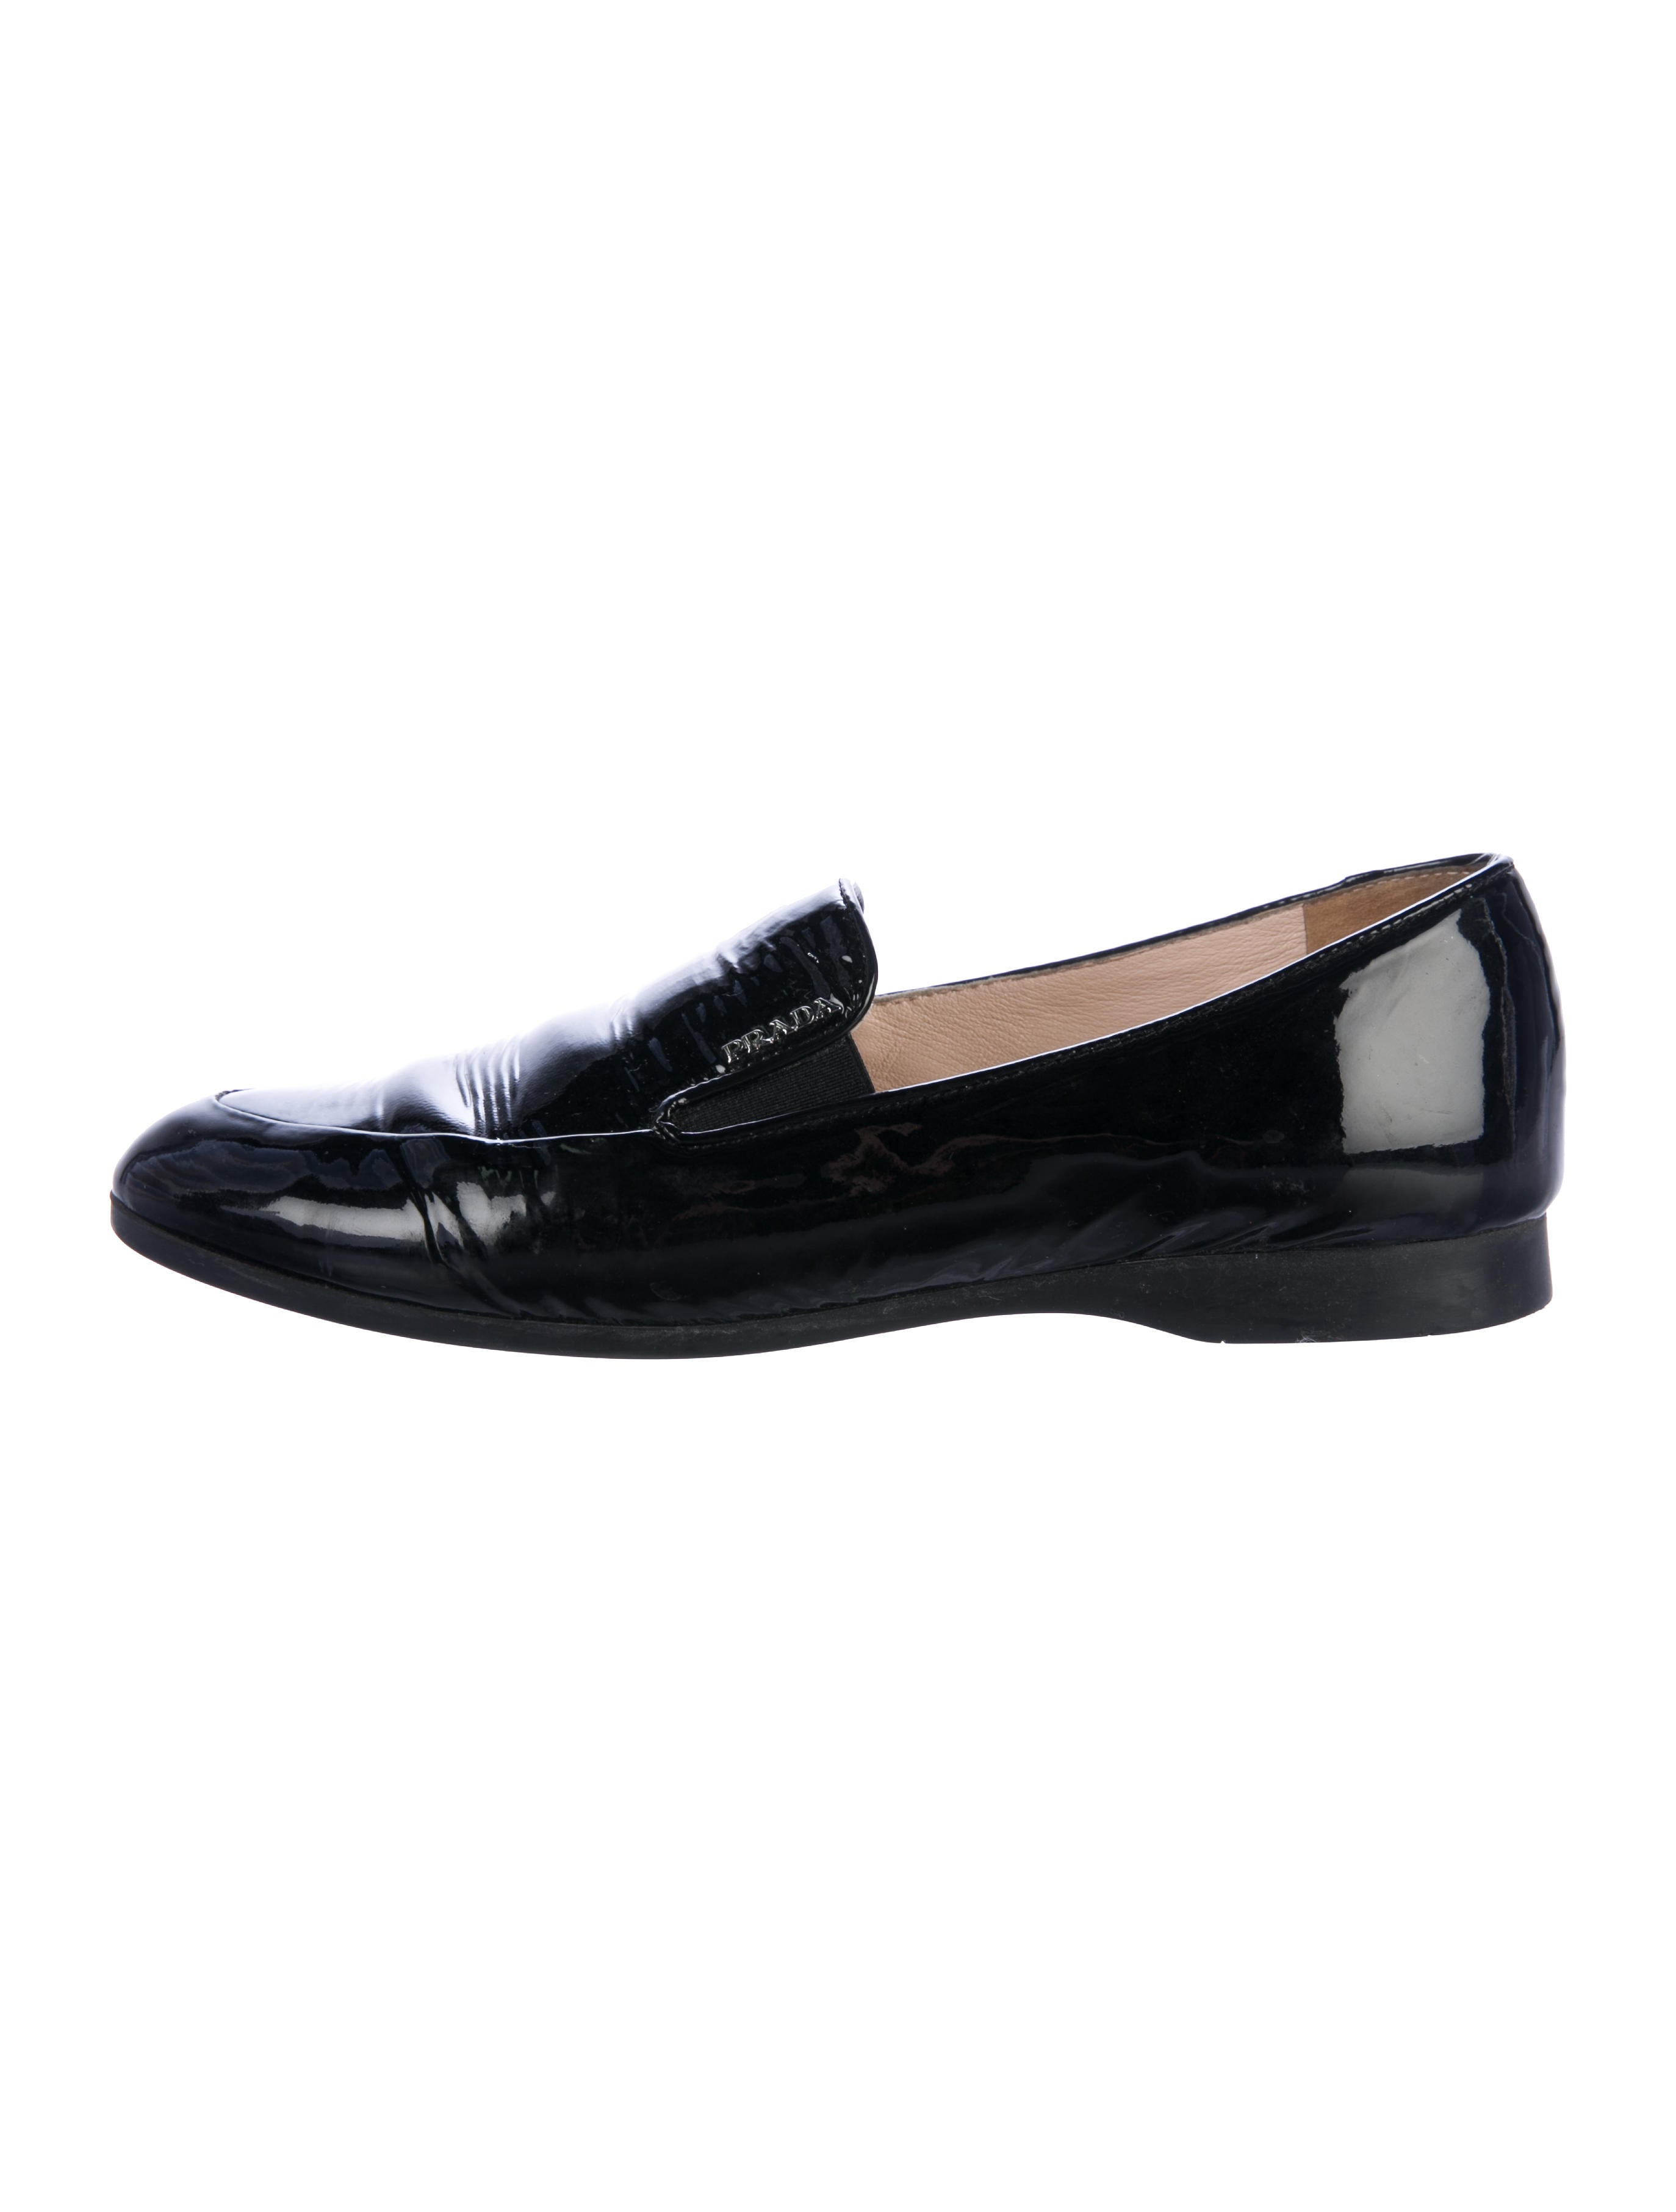 clearance ebay Prada Patent Leather Round-Toe Loafers visit cheap online GTEq2QK9Lp